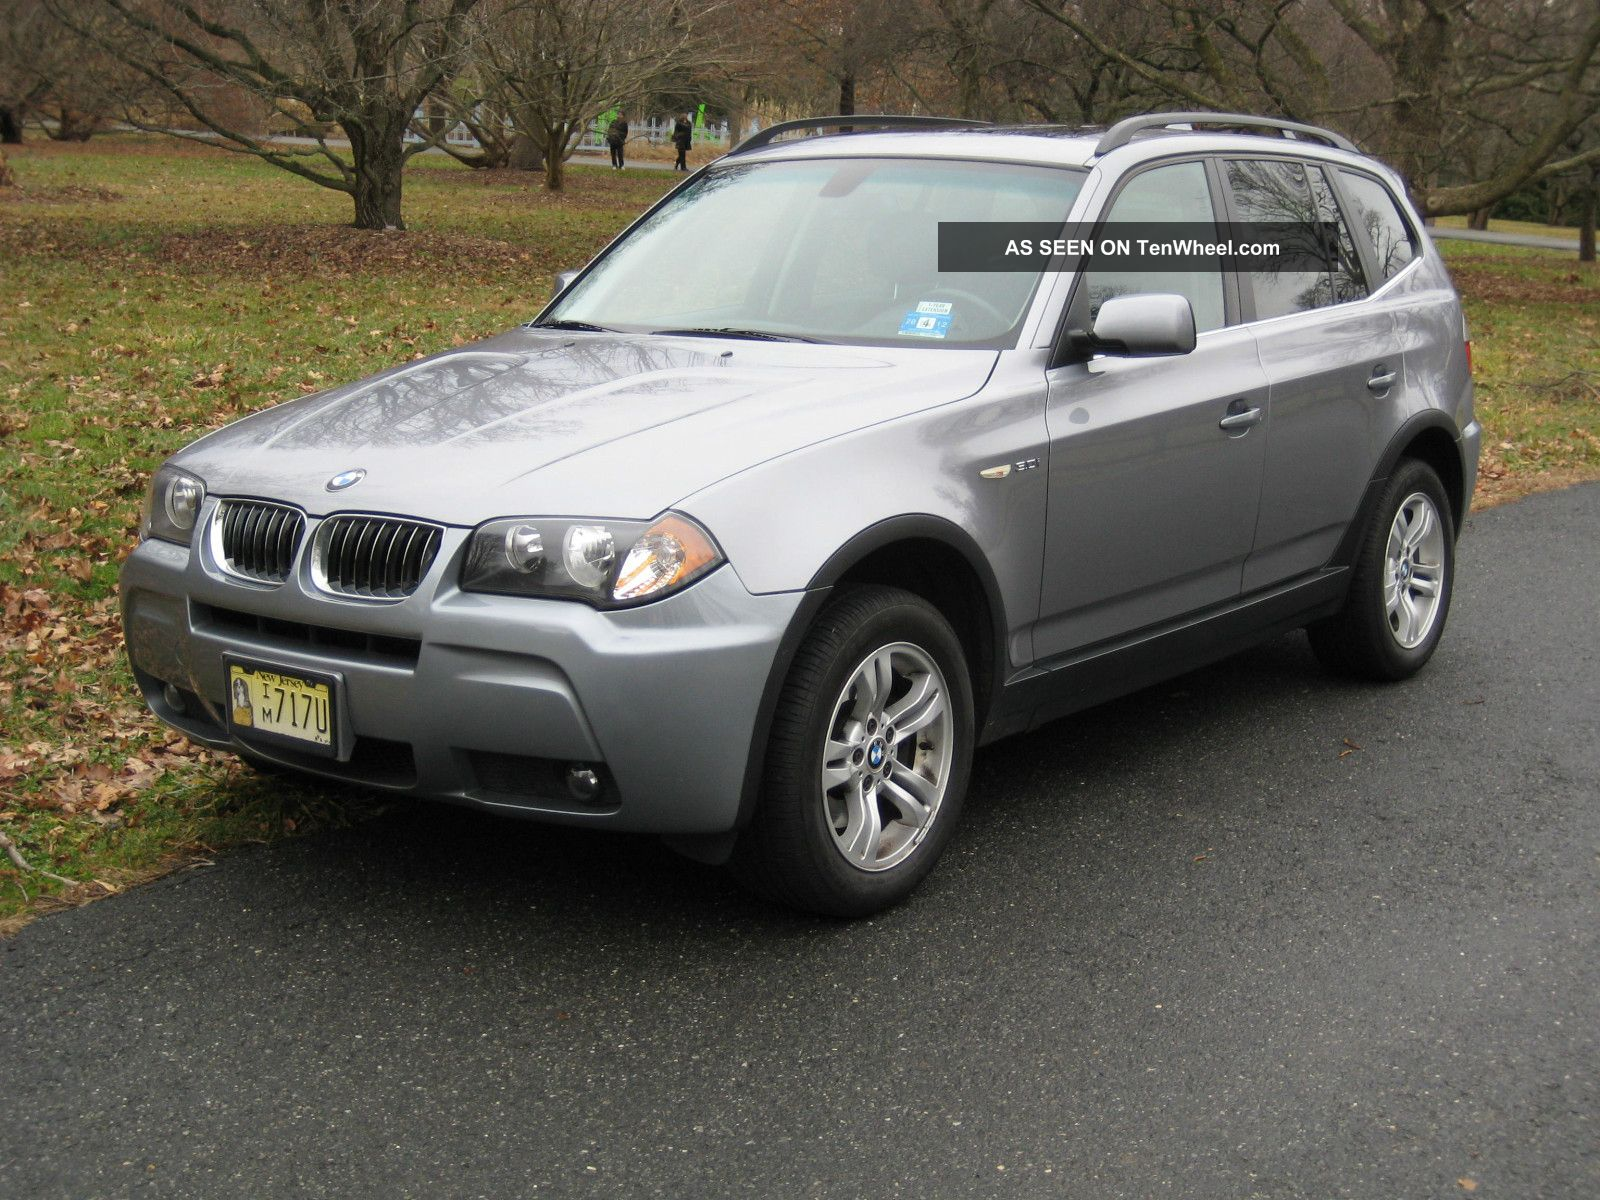 Used BMW X3 with Manual transmission for Sale - CarGurus